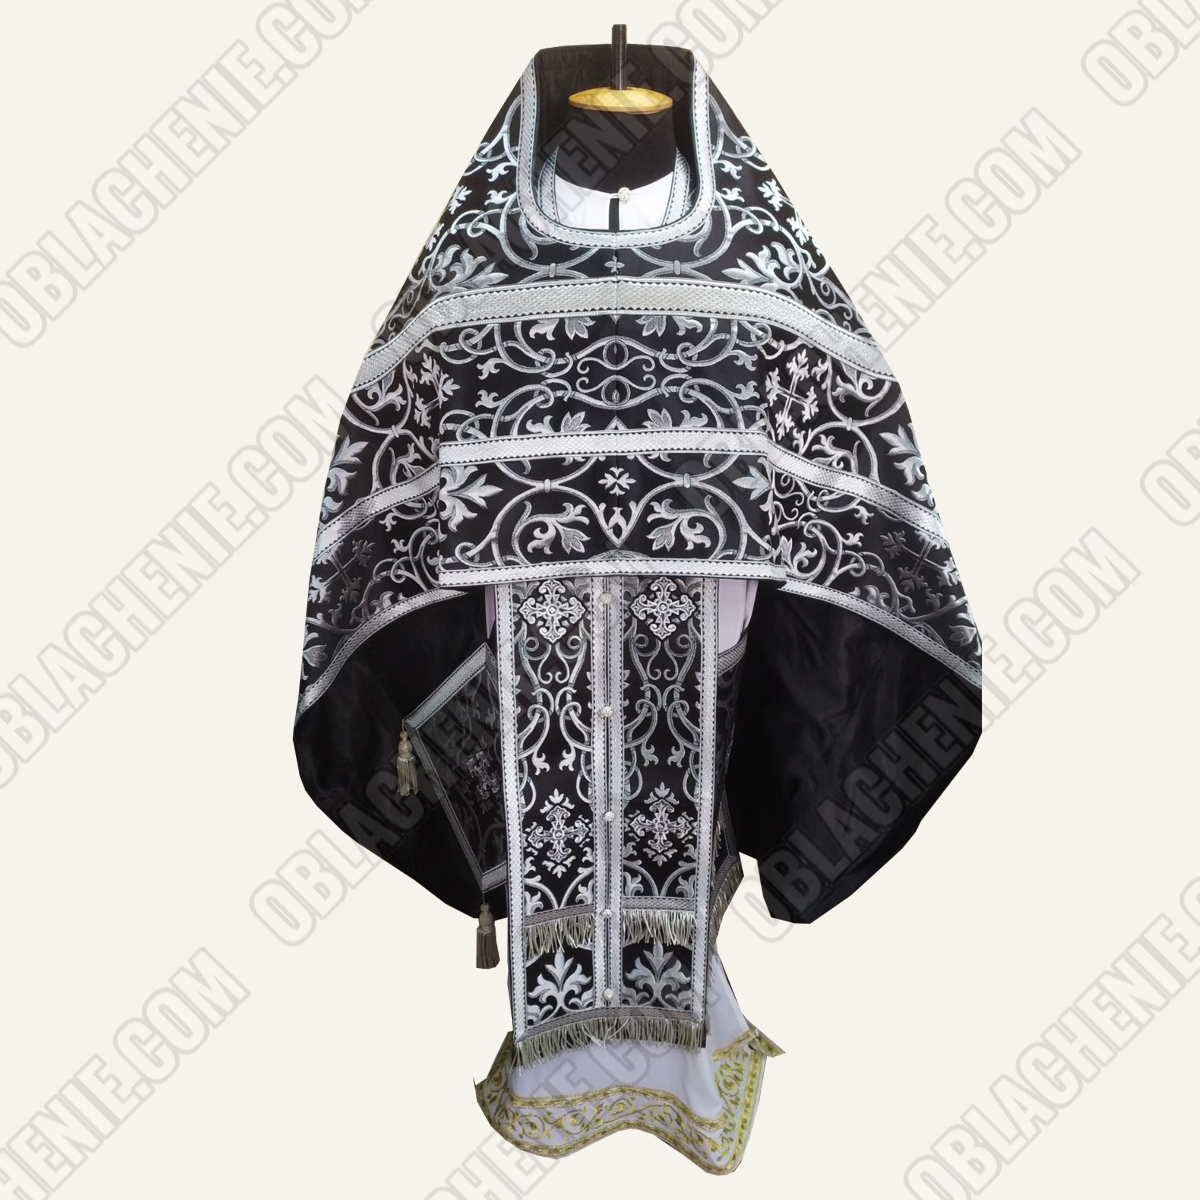 PRIEST'S VESTMENTS 11177